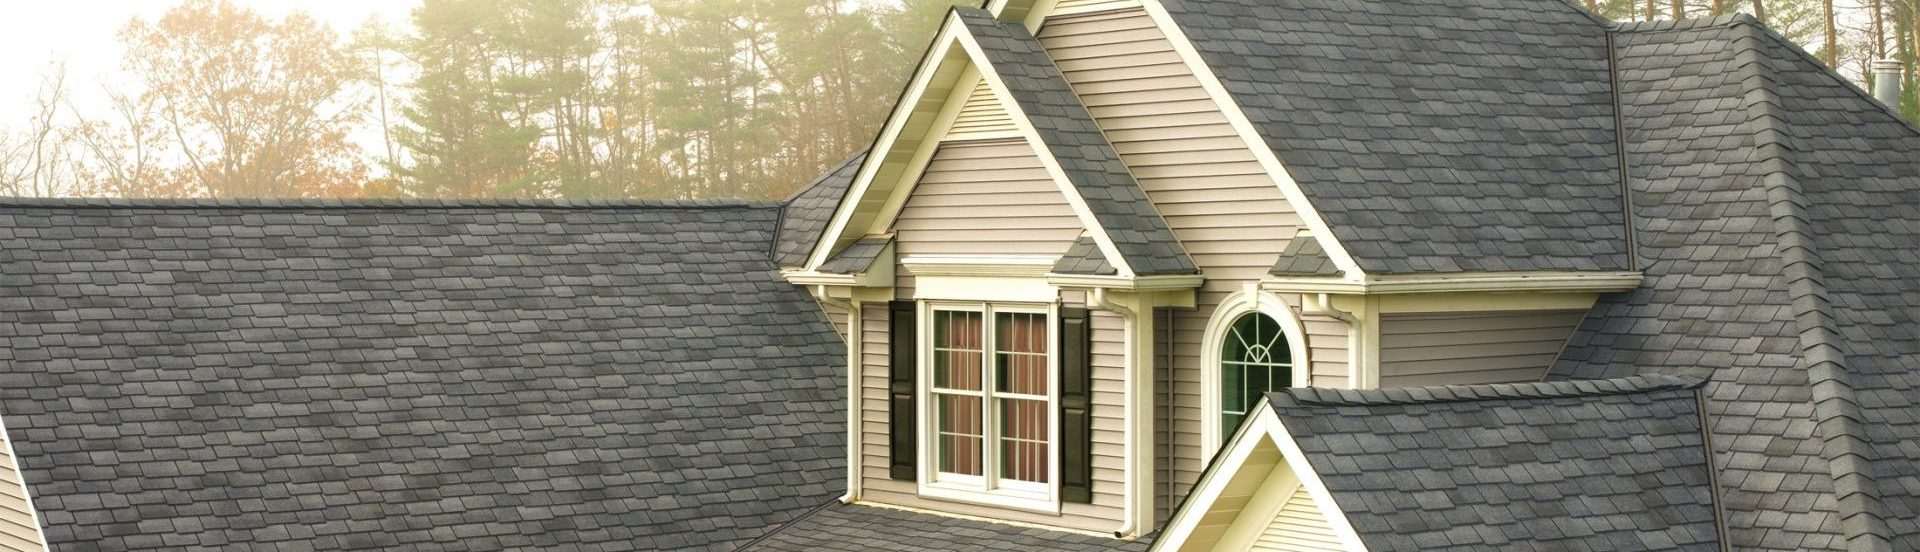 Bountiful roofing and repair company